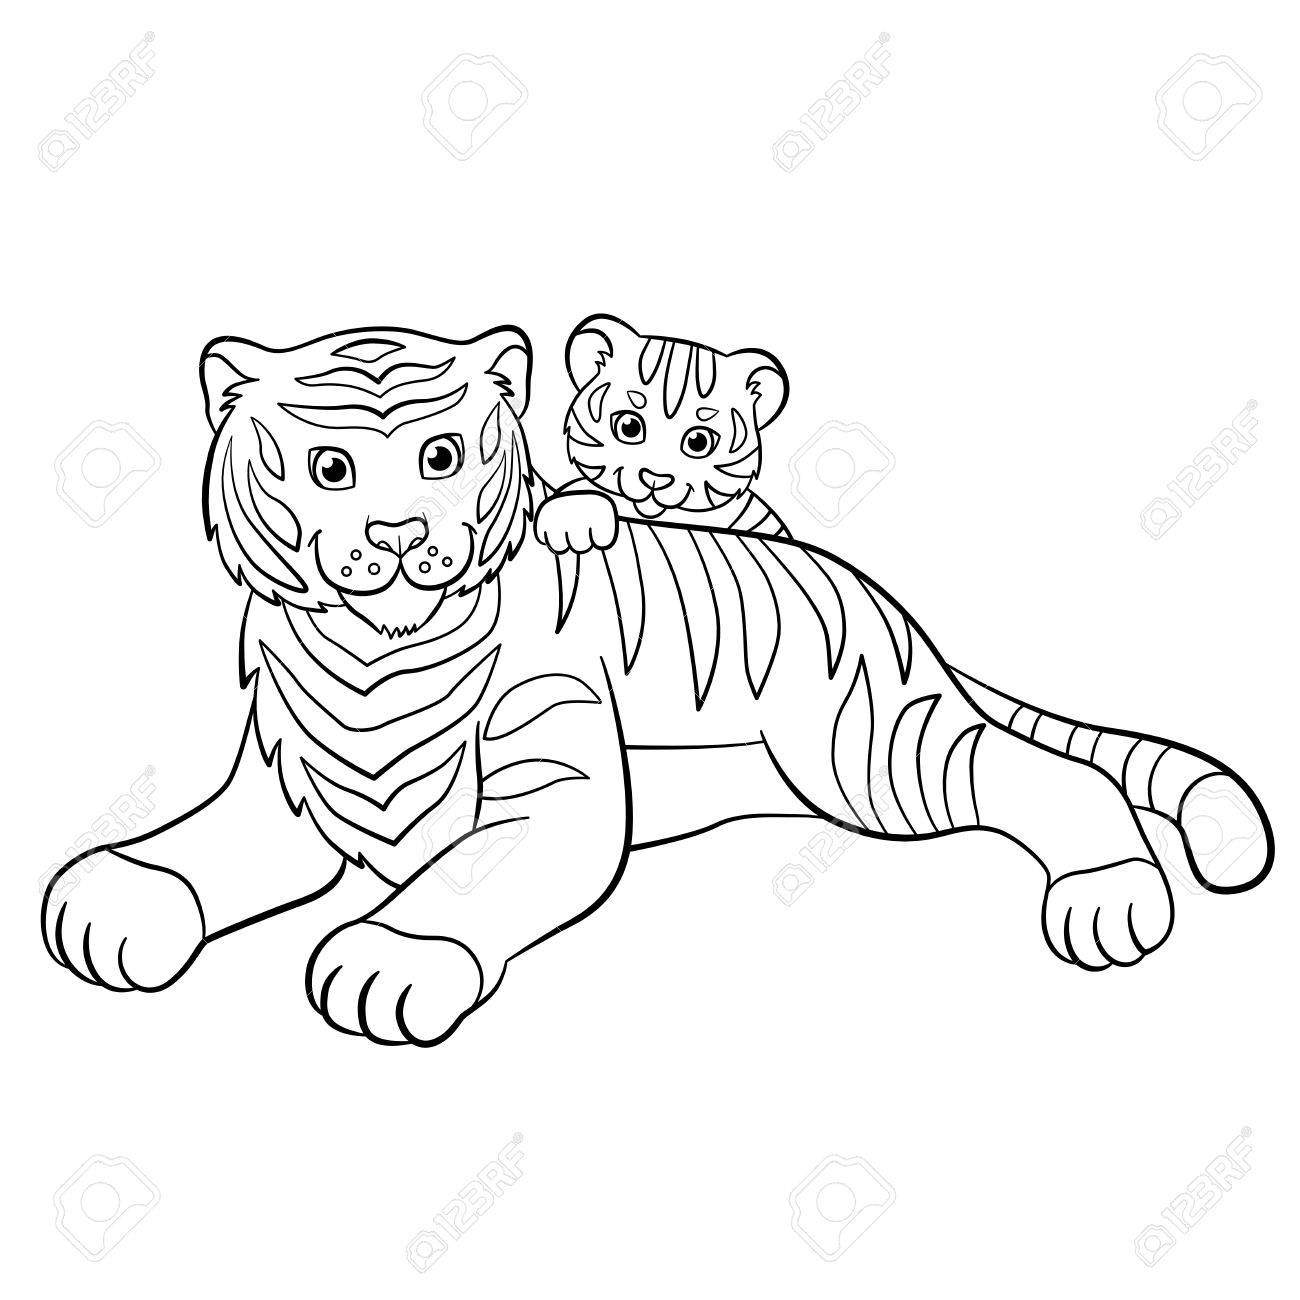 Coloring pages wild animals smiling mother tiger with her little cute baby tiger